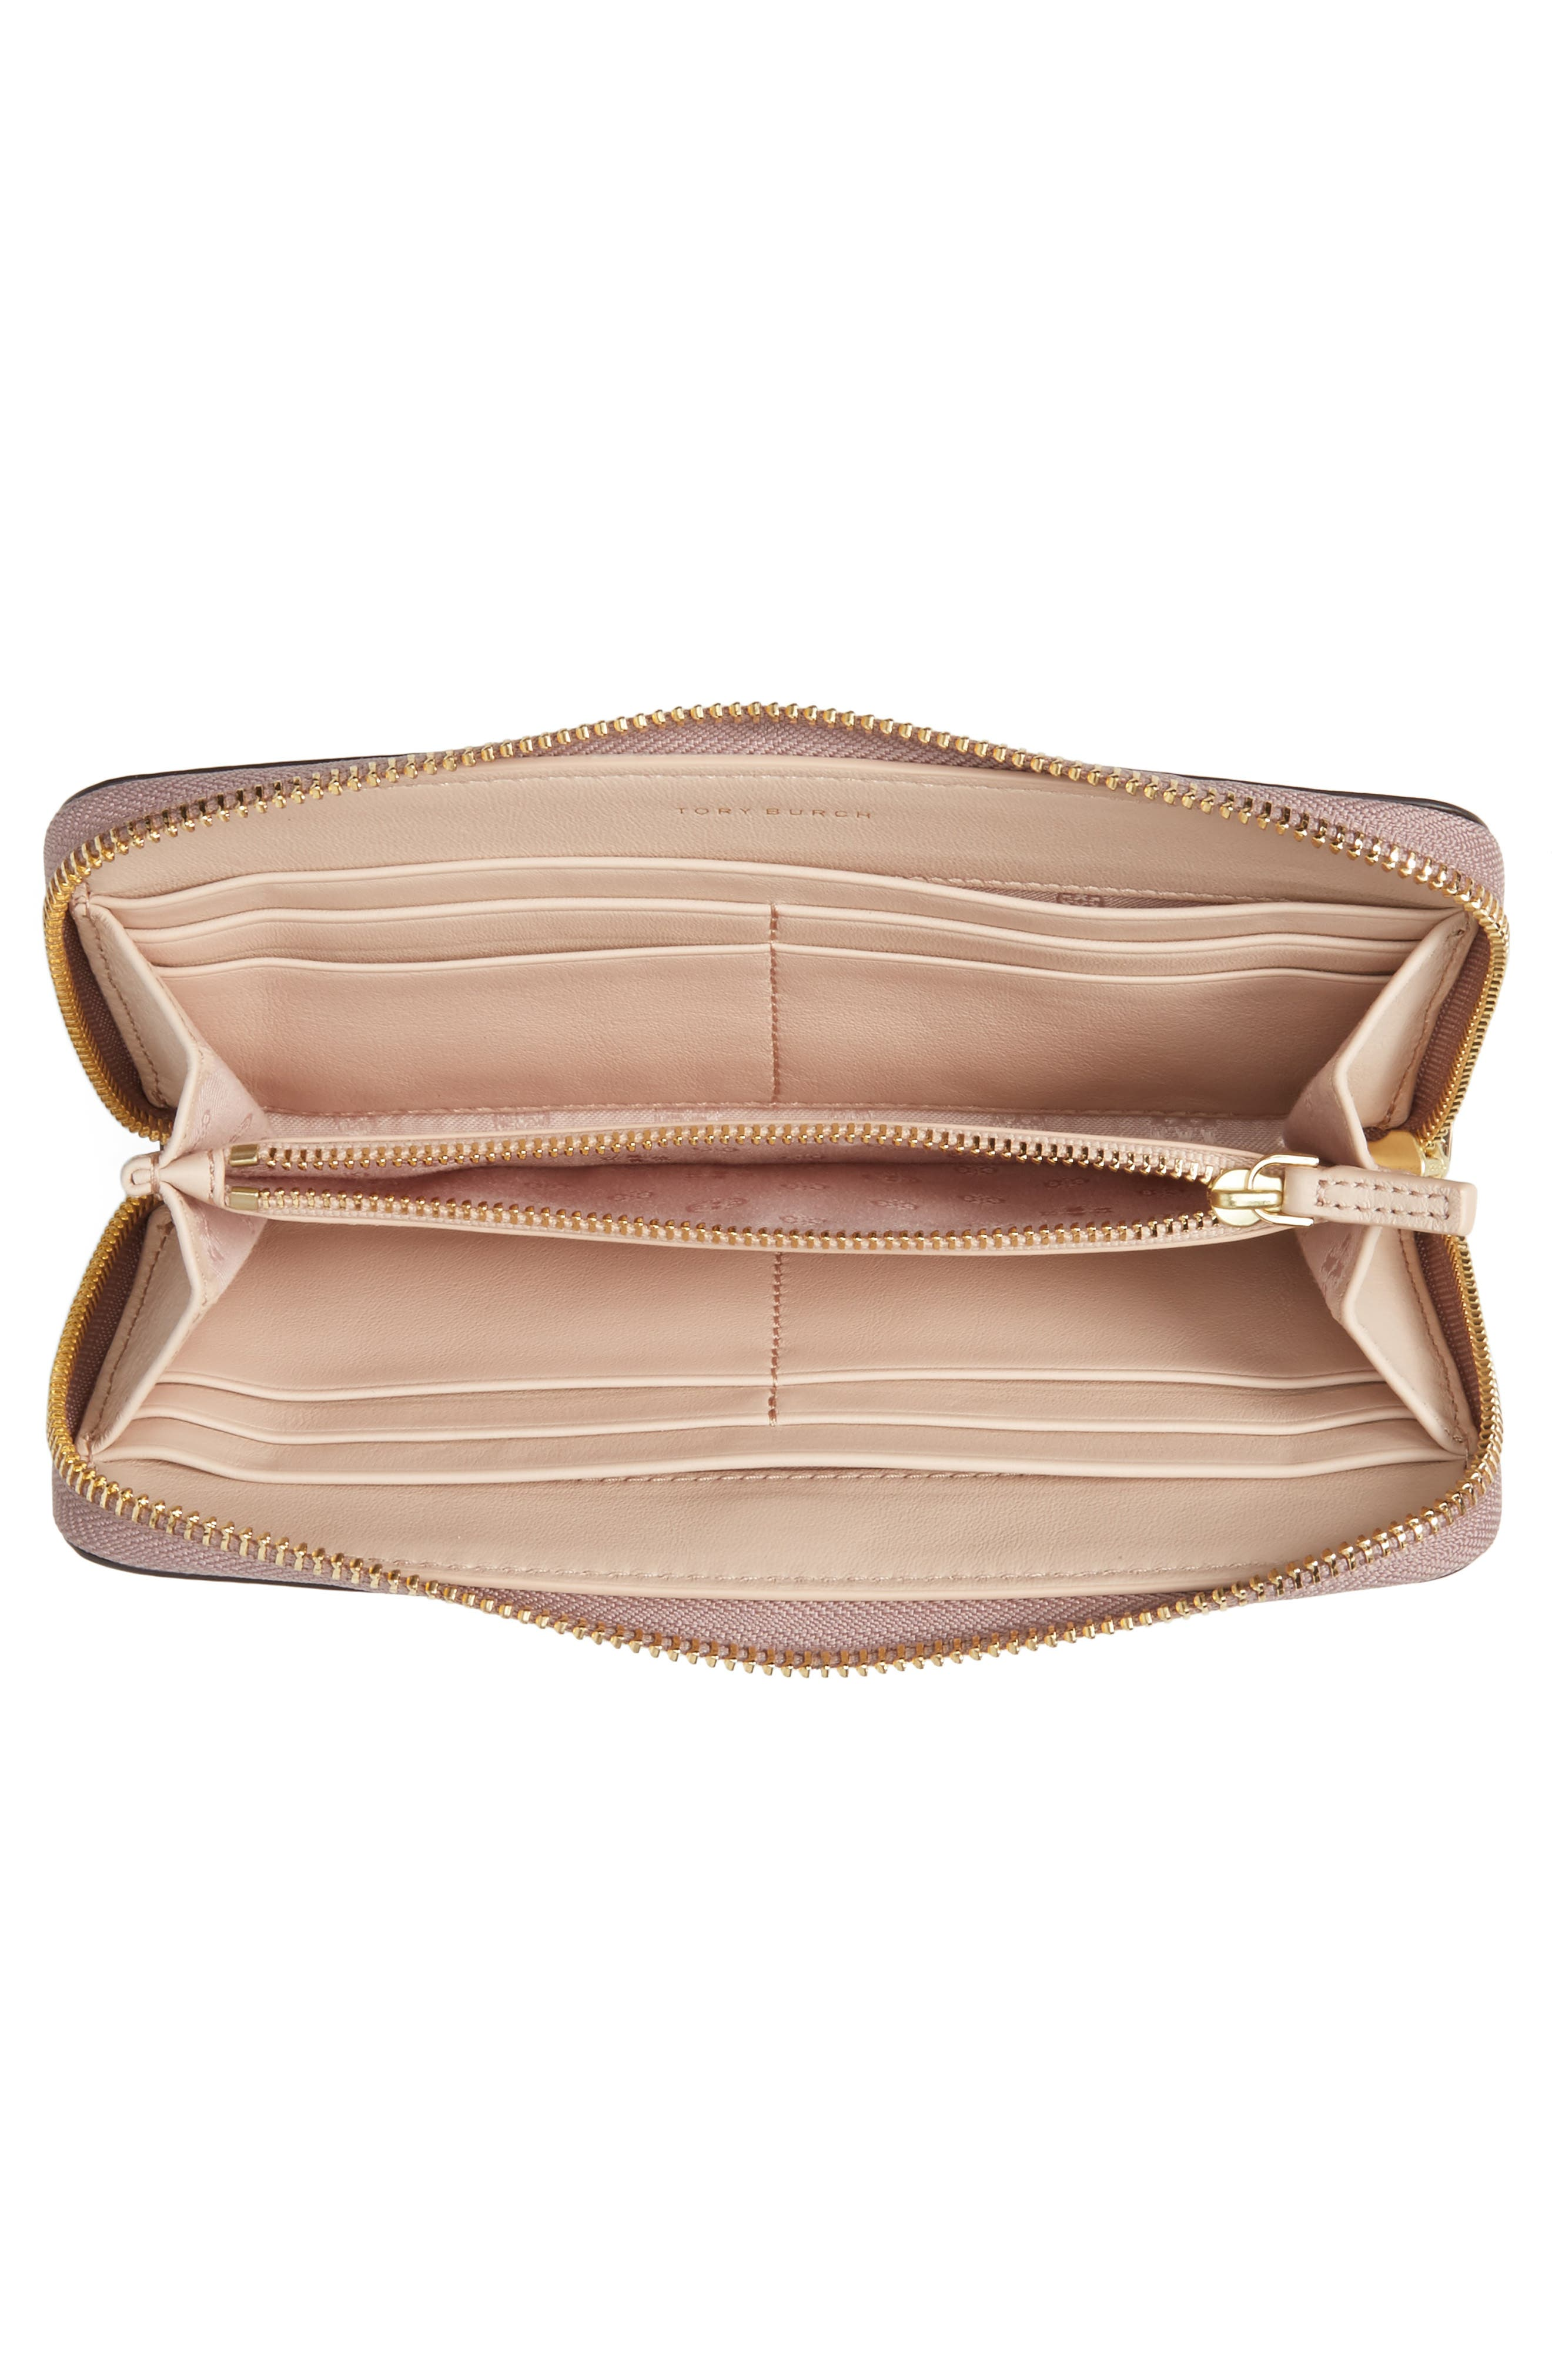 Robinson Metallic Leather Continental Wallet,                             Alternate thumbnail 2, color,                             Rose Gold